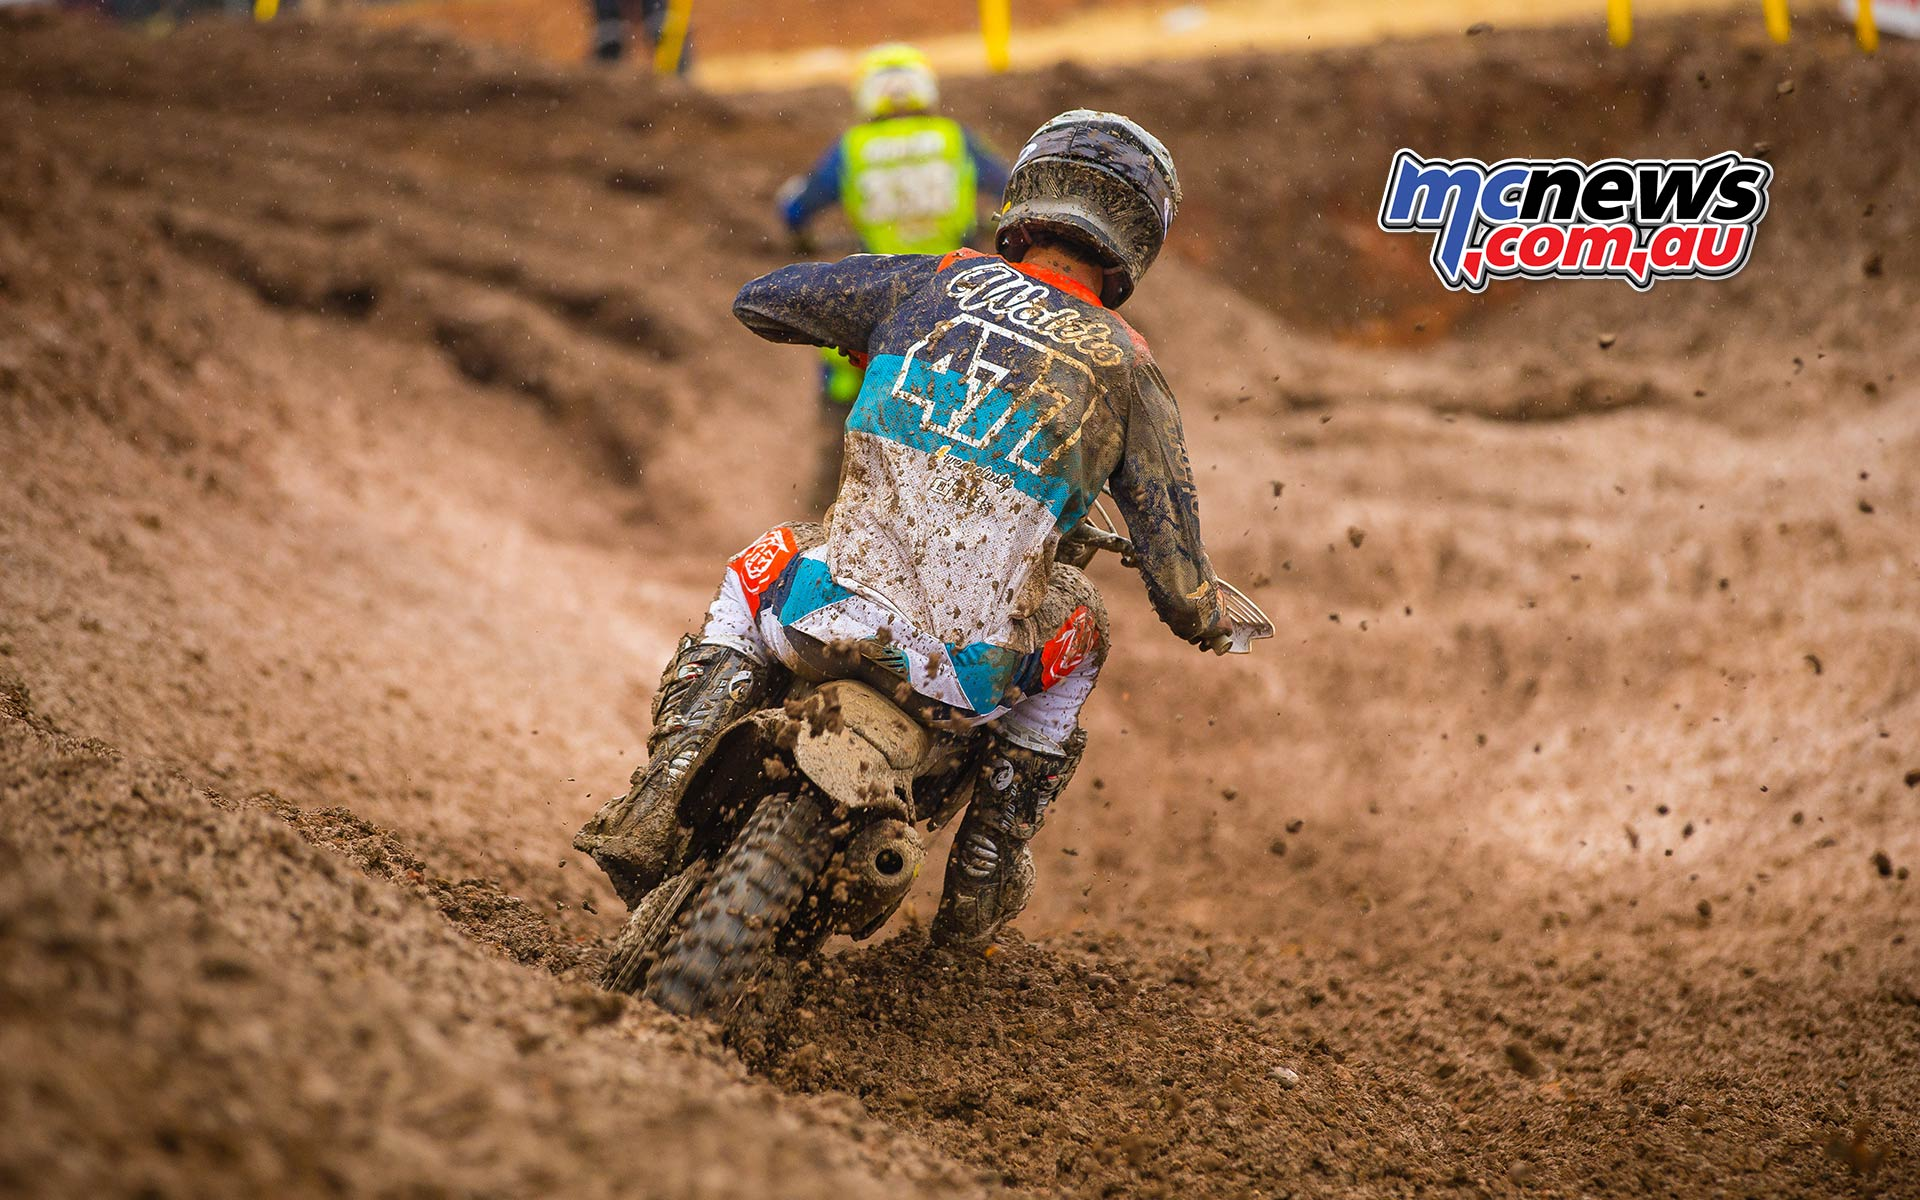 AMA MX Rnd Todd Waters Privateers JK MX Hangtown